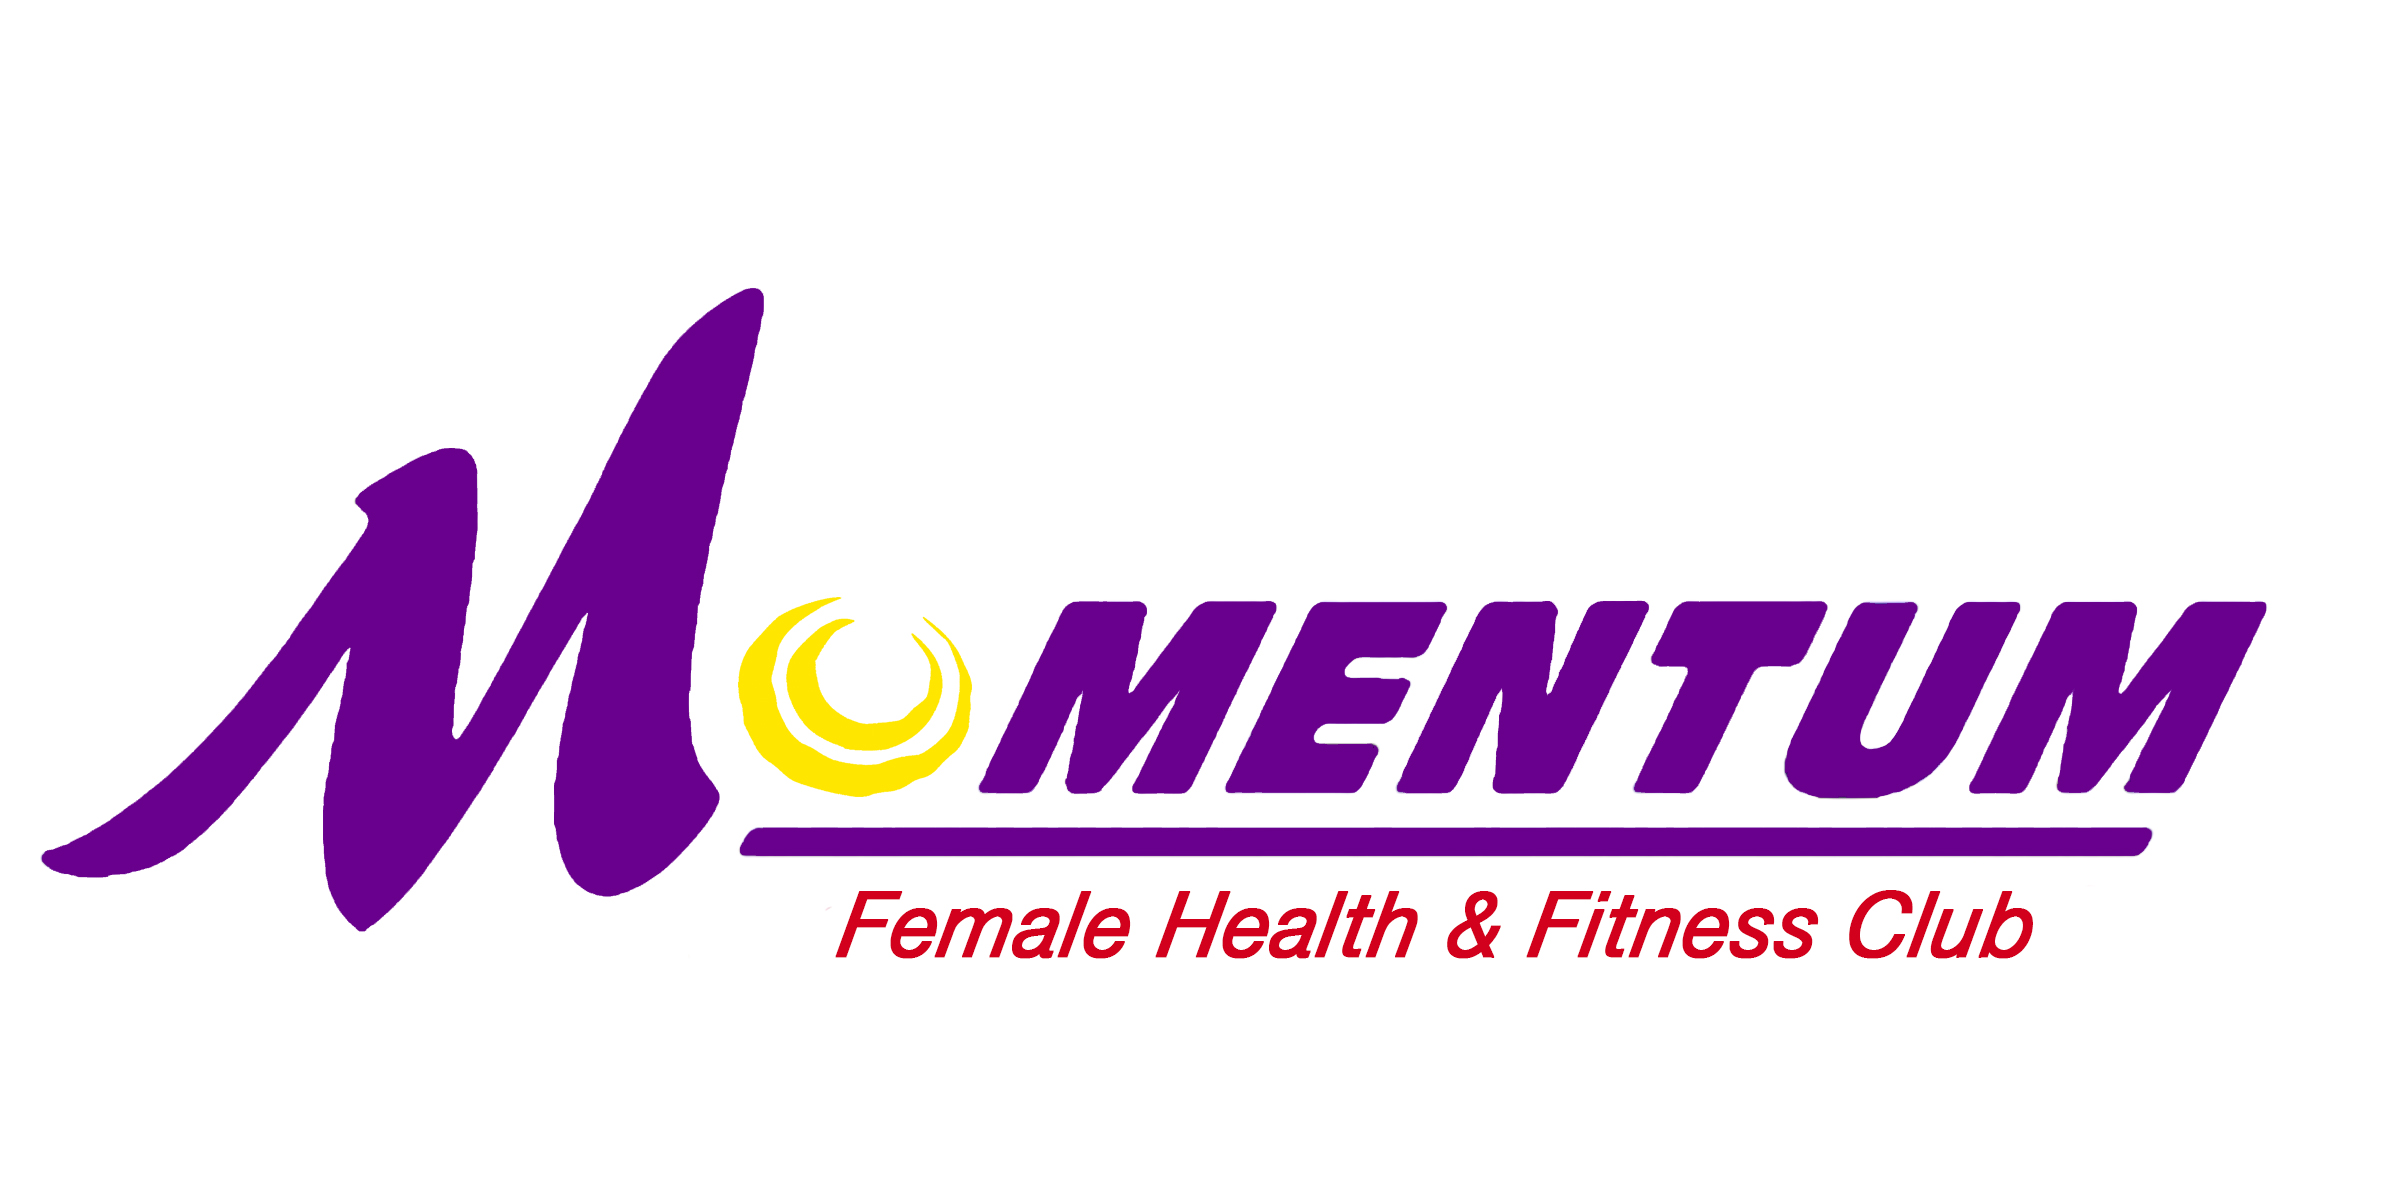 Press Release: Momentum Female Health and Fitness Club Will Hold Annual Fall Festival